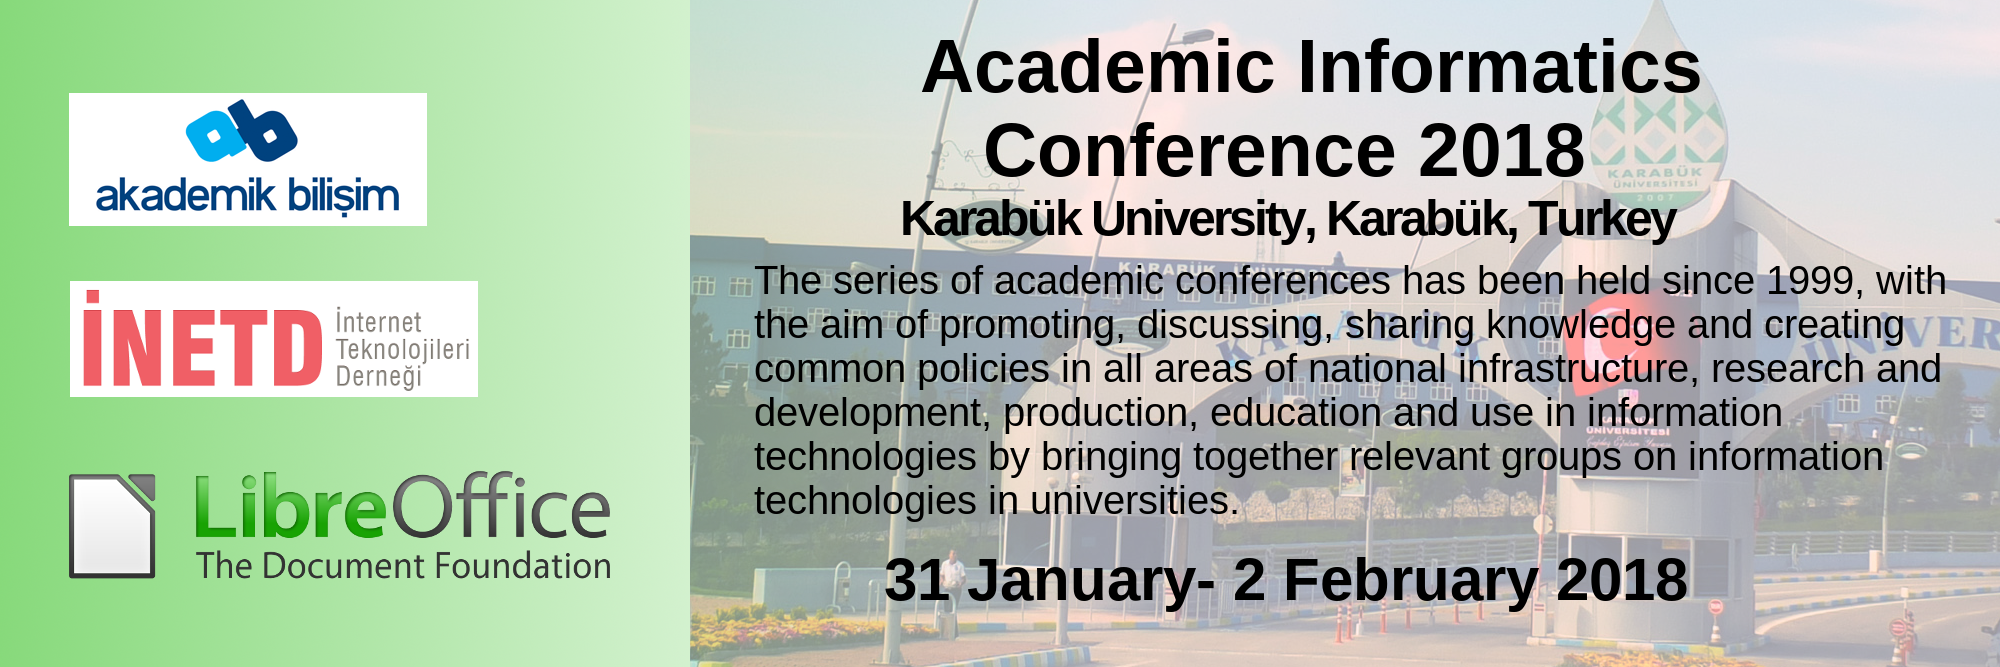 01 31Jan 02Feb2018 AcademiInformatics Conference2018 KarabukUnitersity EN